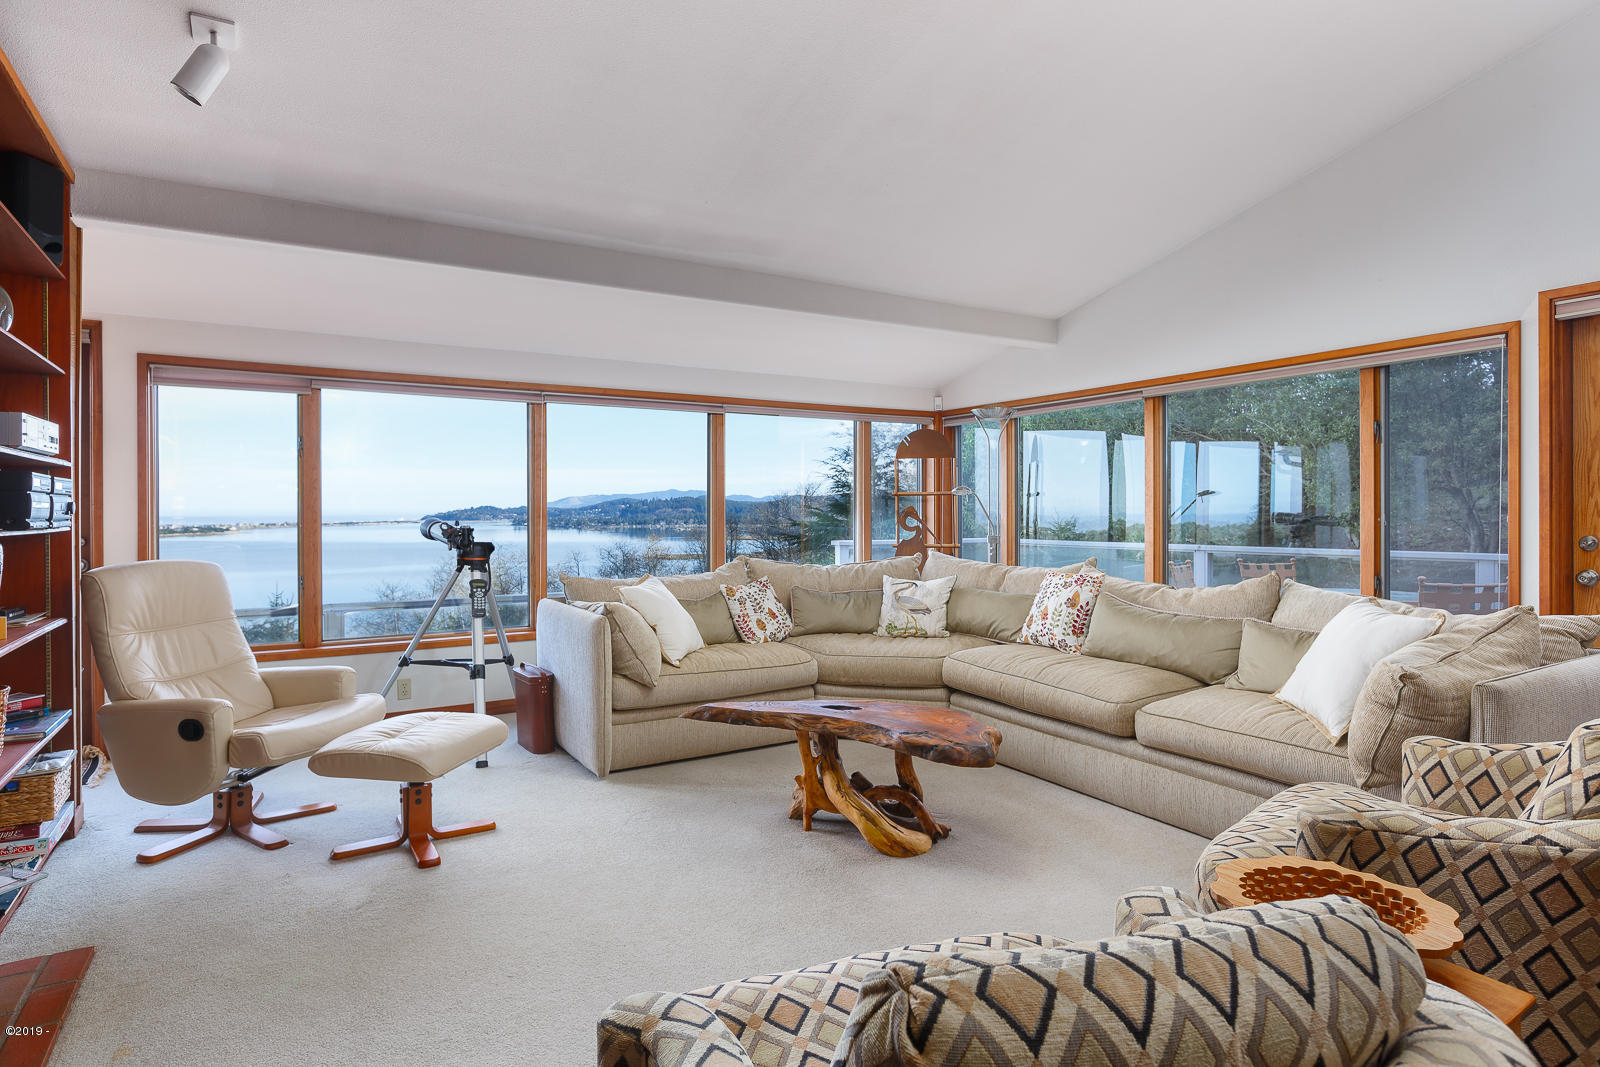 11 Bluffs Dr, Gleneden Beach, OR 97388 - Spacious Living Room with View